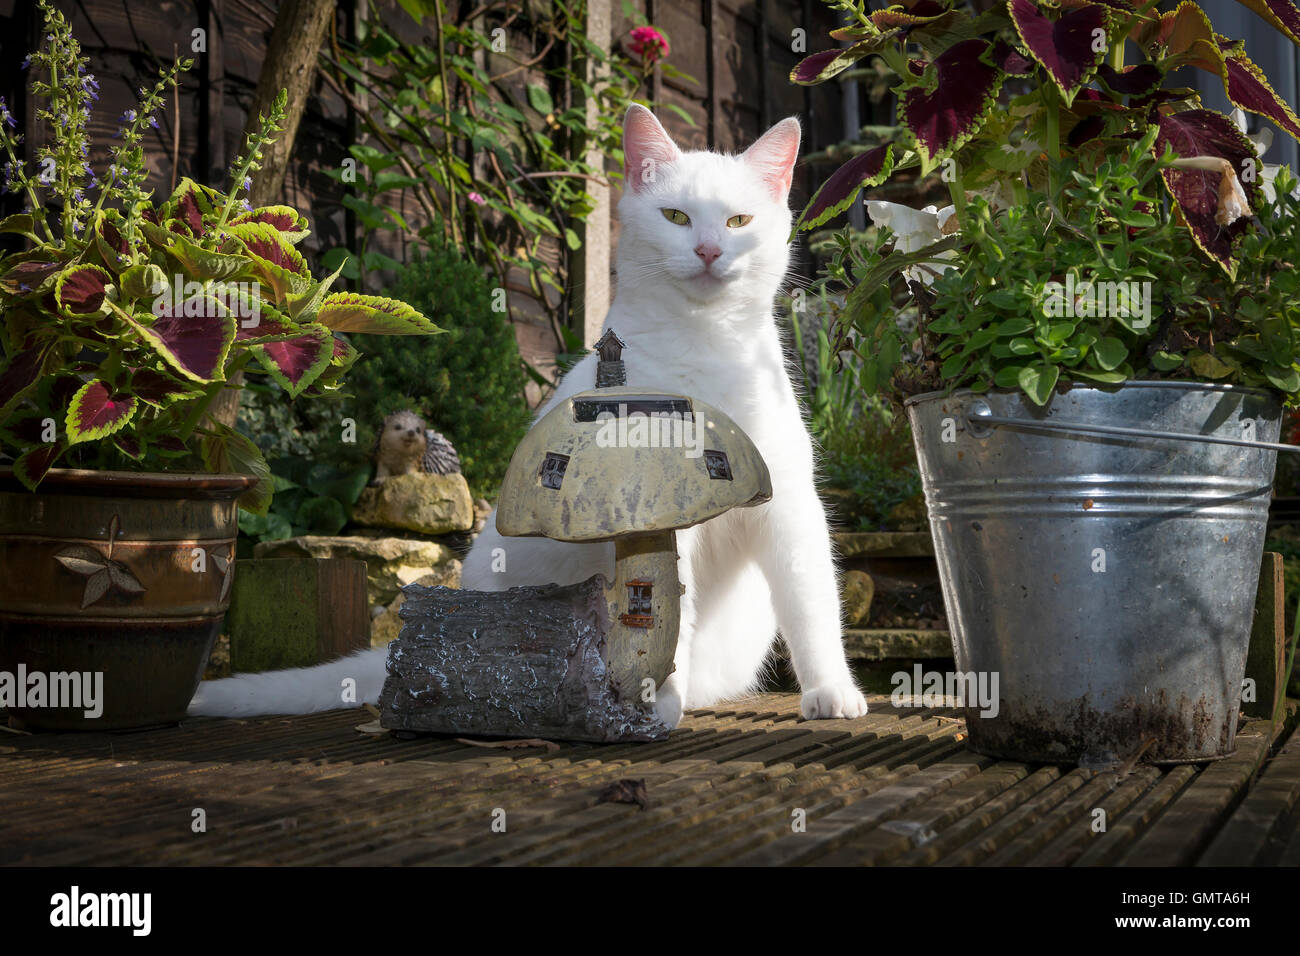 White cat sitting on garden decking amongst potted plants for Garden decking ornaments